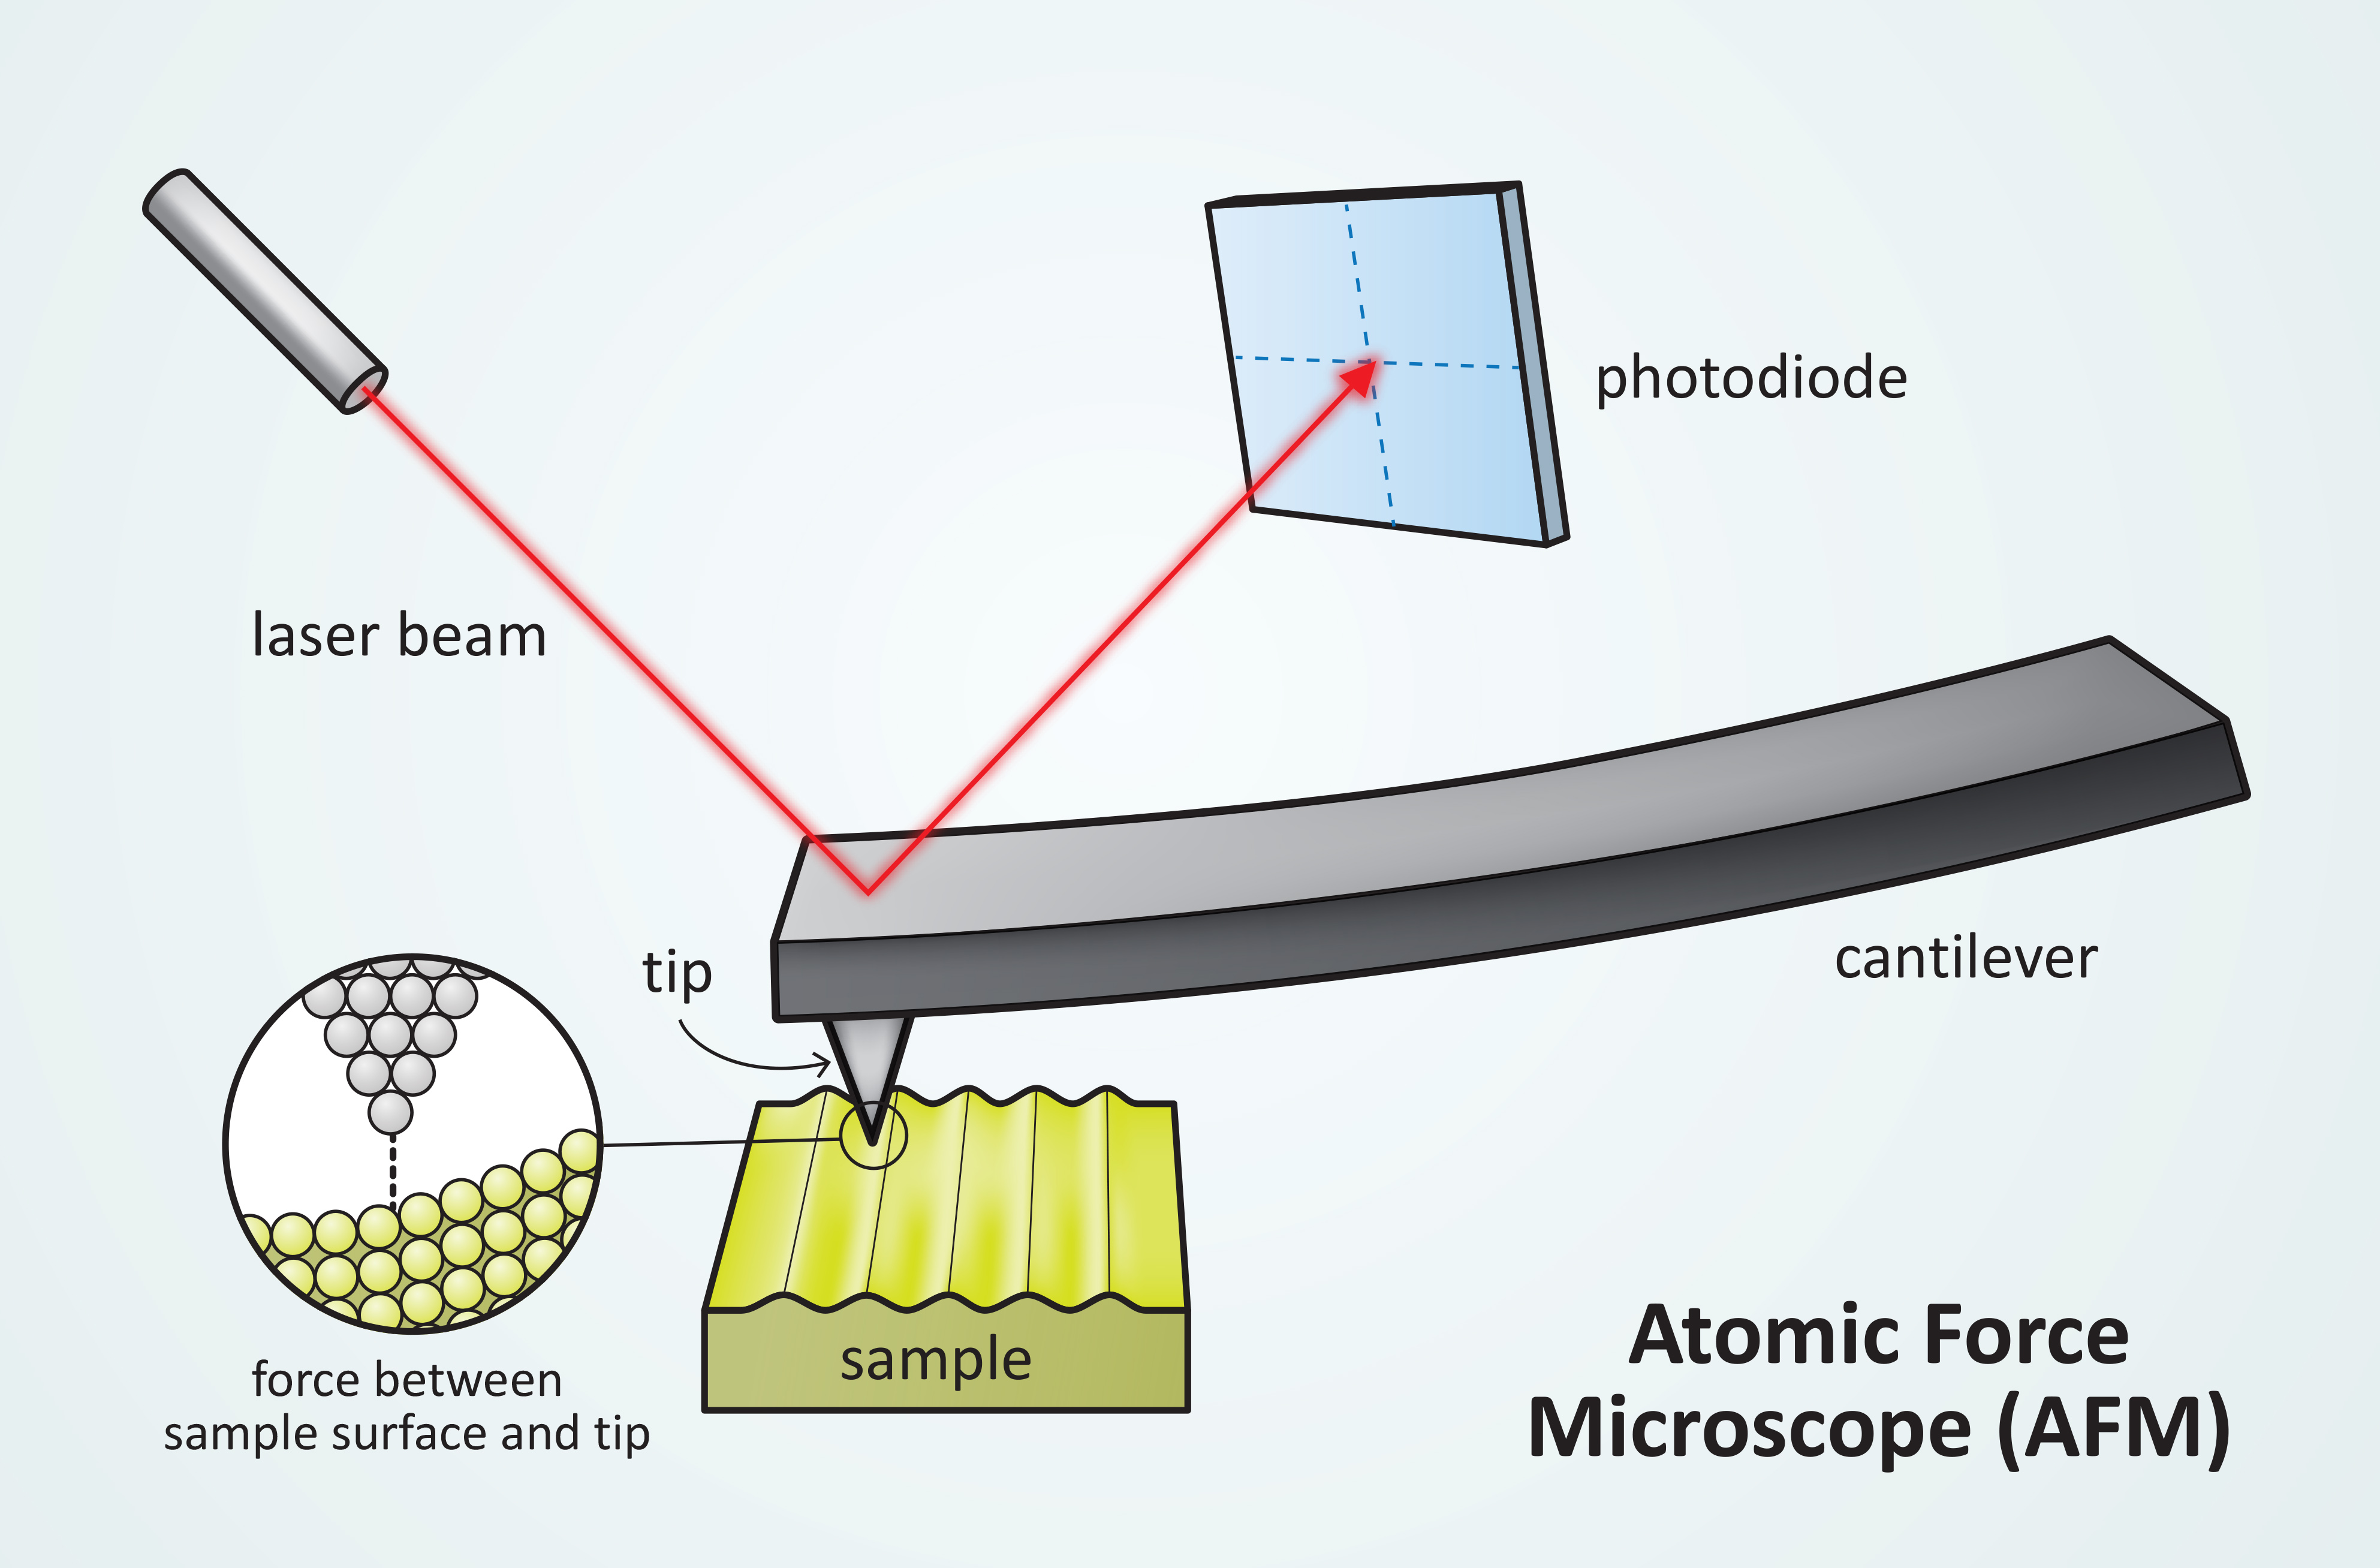 Nanotechnology - Atomic Force Microscope